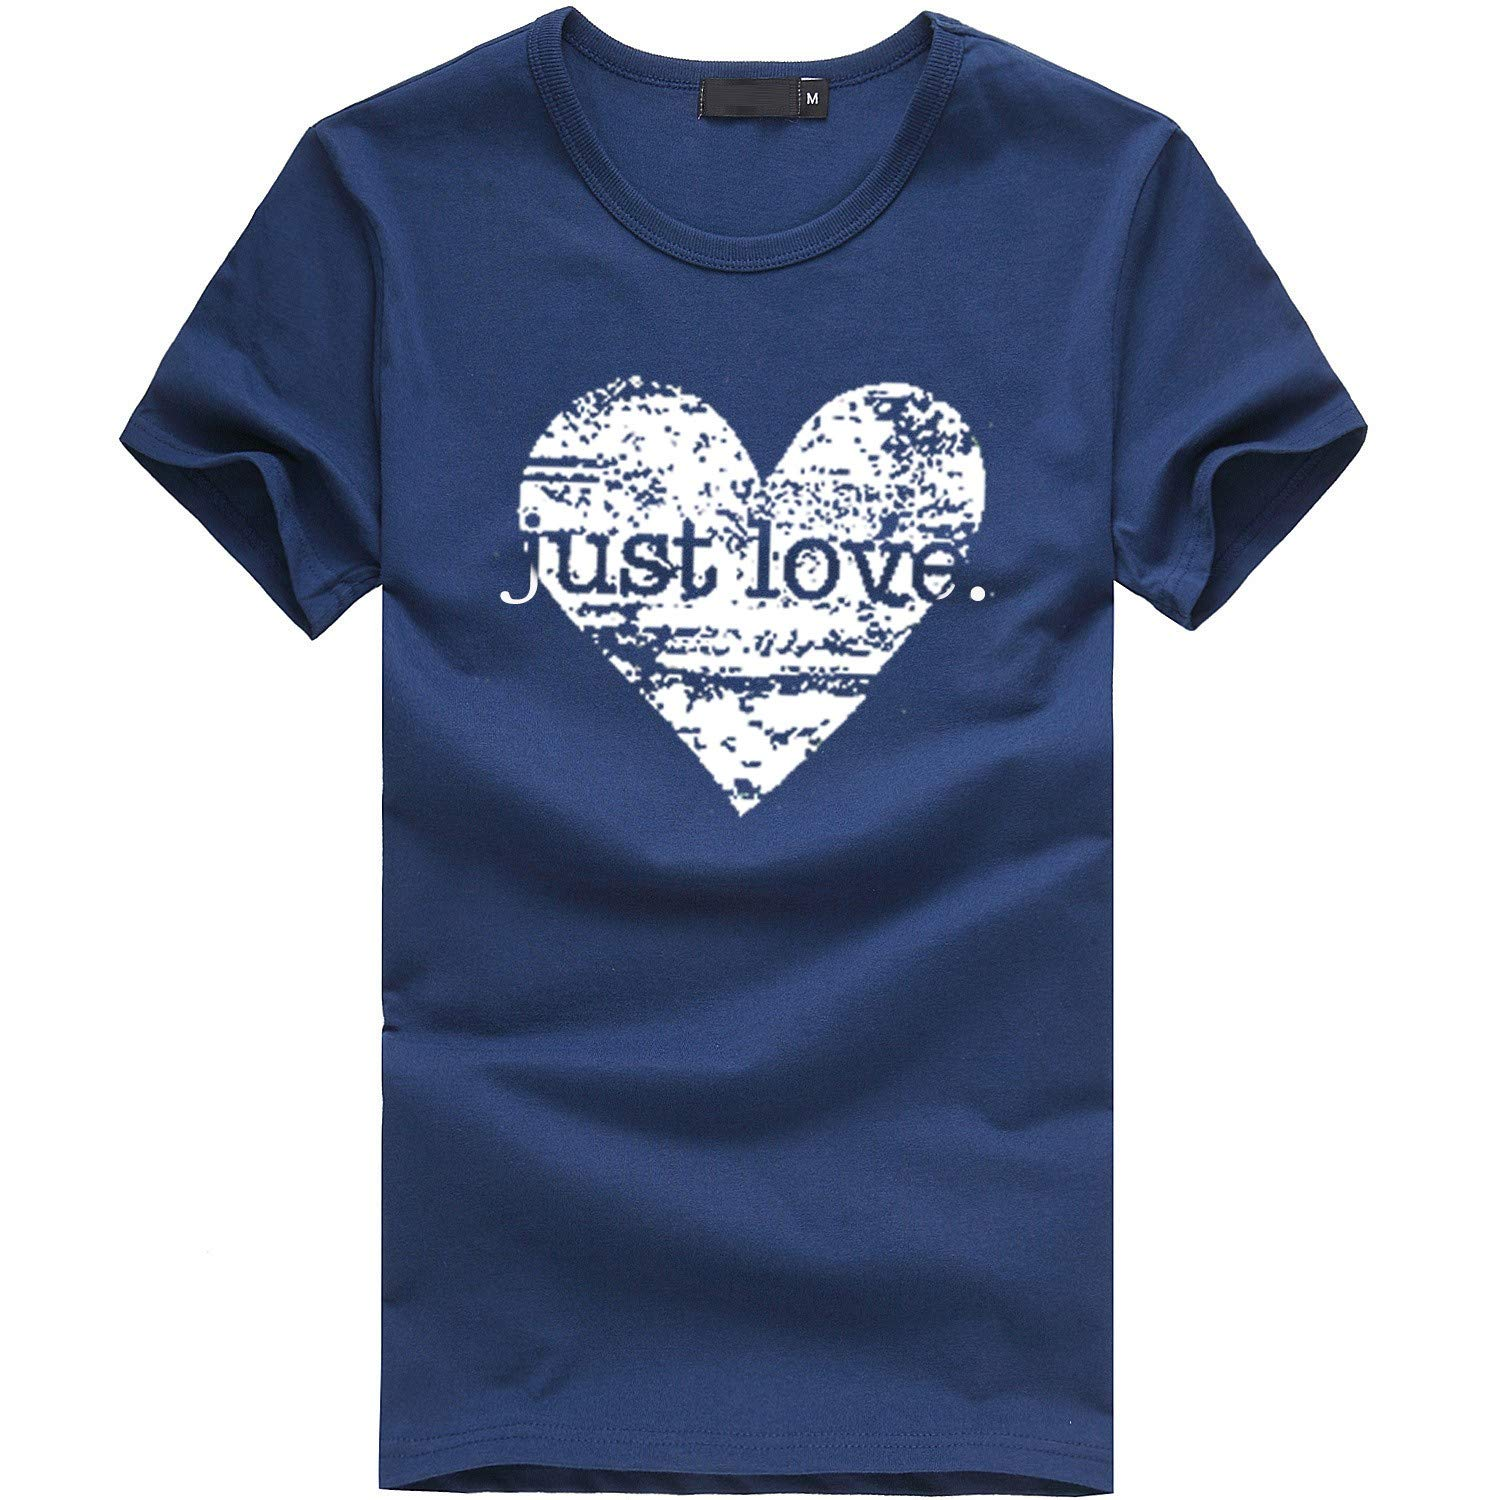 Valentine's Day Buffalo Plaid Love Heart Letter Print T-Shirt Women Cute Graphic Tee O-Neck Short Sleeve Tops Navy,L